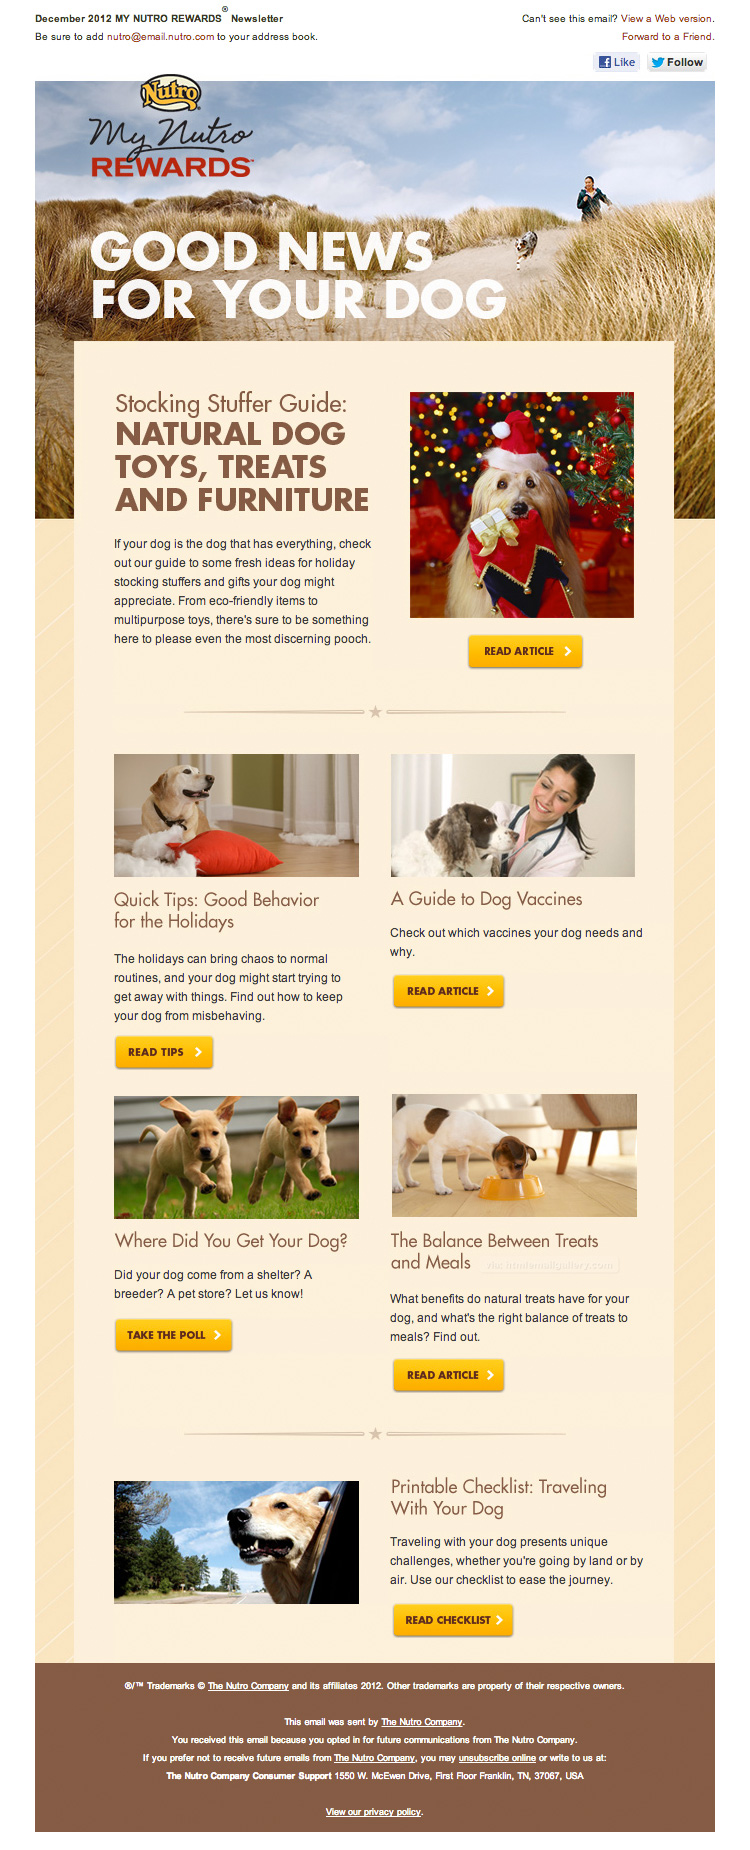 Good news for your dogs email html email gallery for Newsletter design inspiration